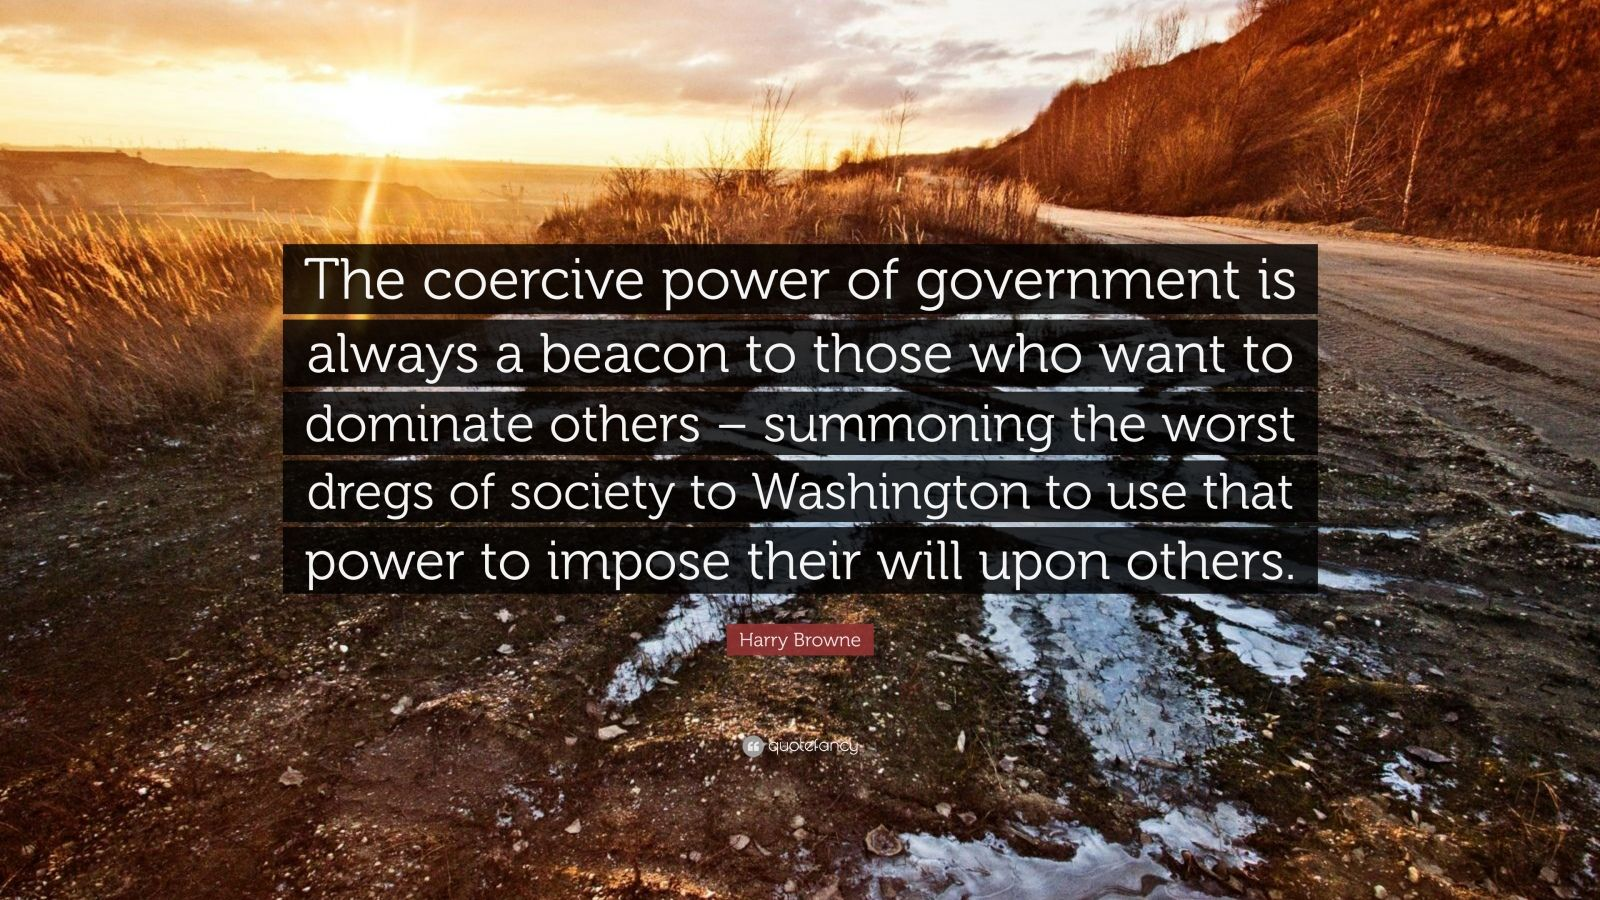 """Harry Browne Quote: """"The coercive power of government is always a beacon to those who want to dominate others – summoning the worst dregs of society to Washington to use that power to impose their will upon others."""""""